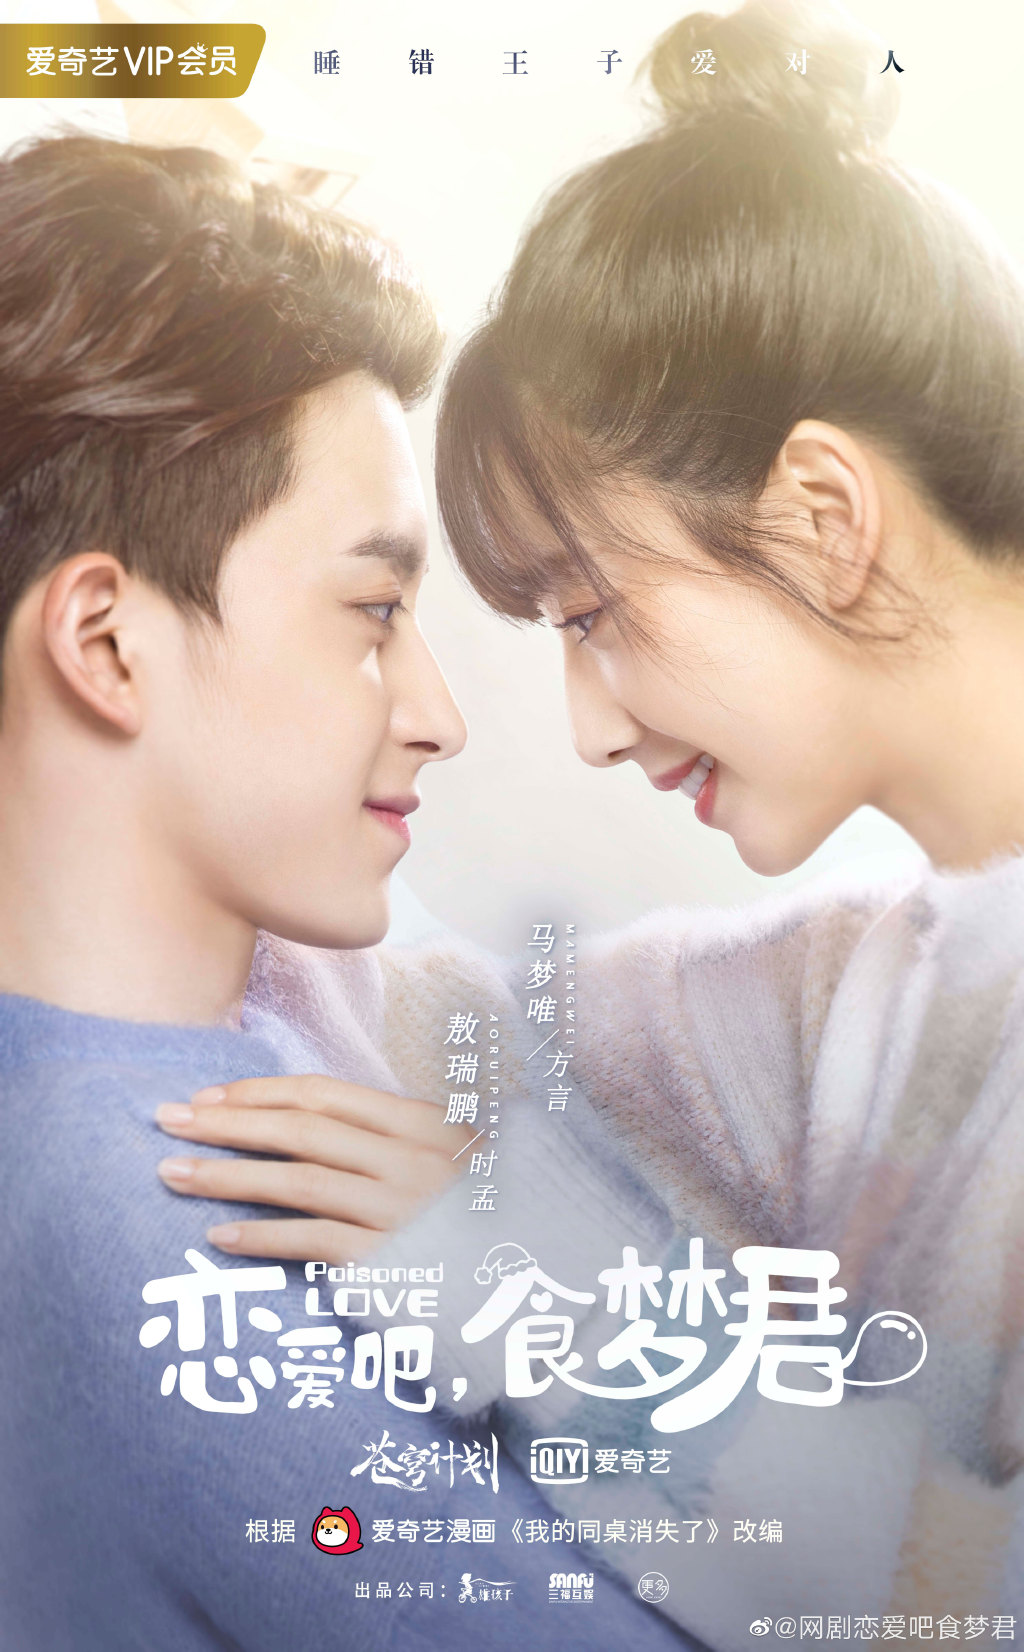 Poisoned Love Chinese Drama Poster